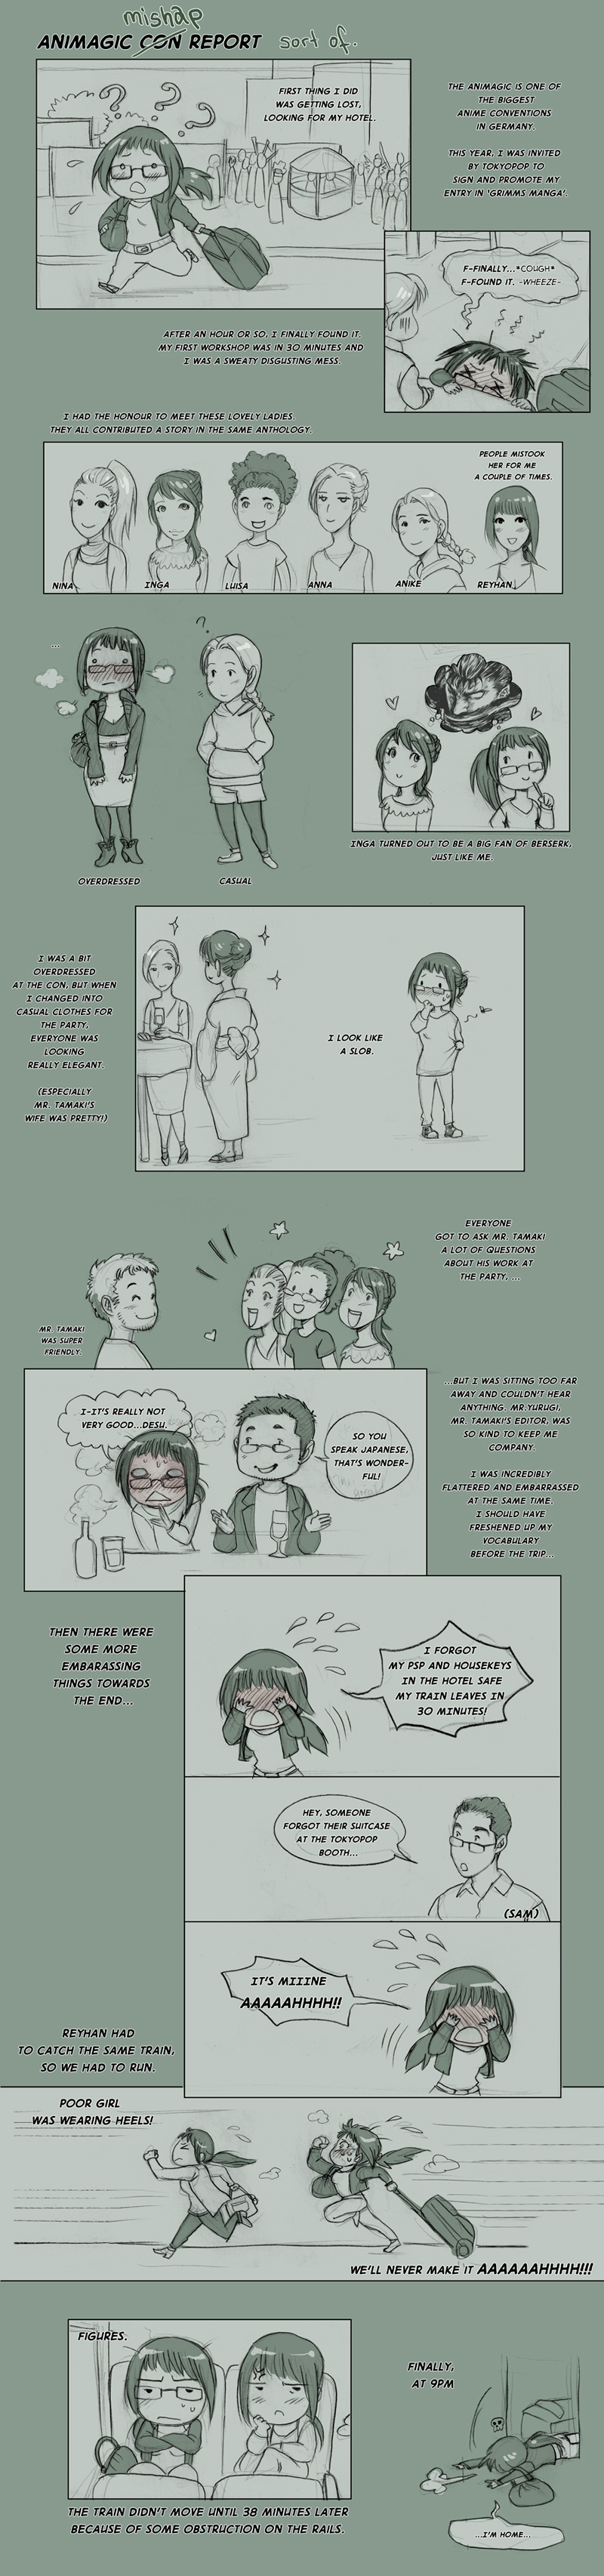 Animagic Con Report by Zombiesmile